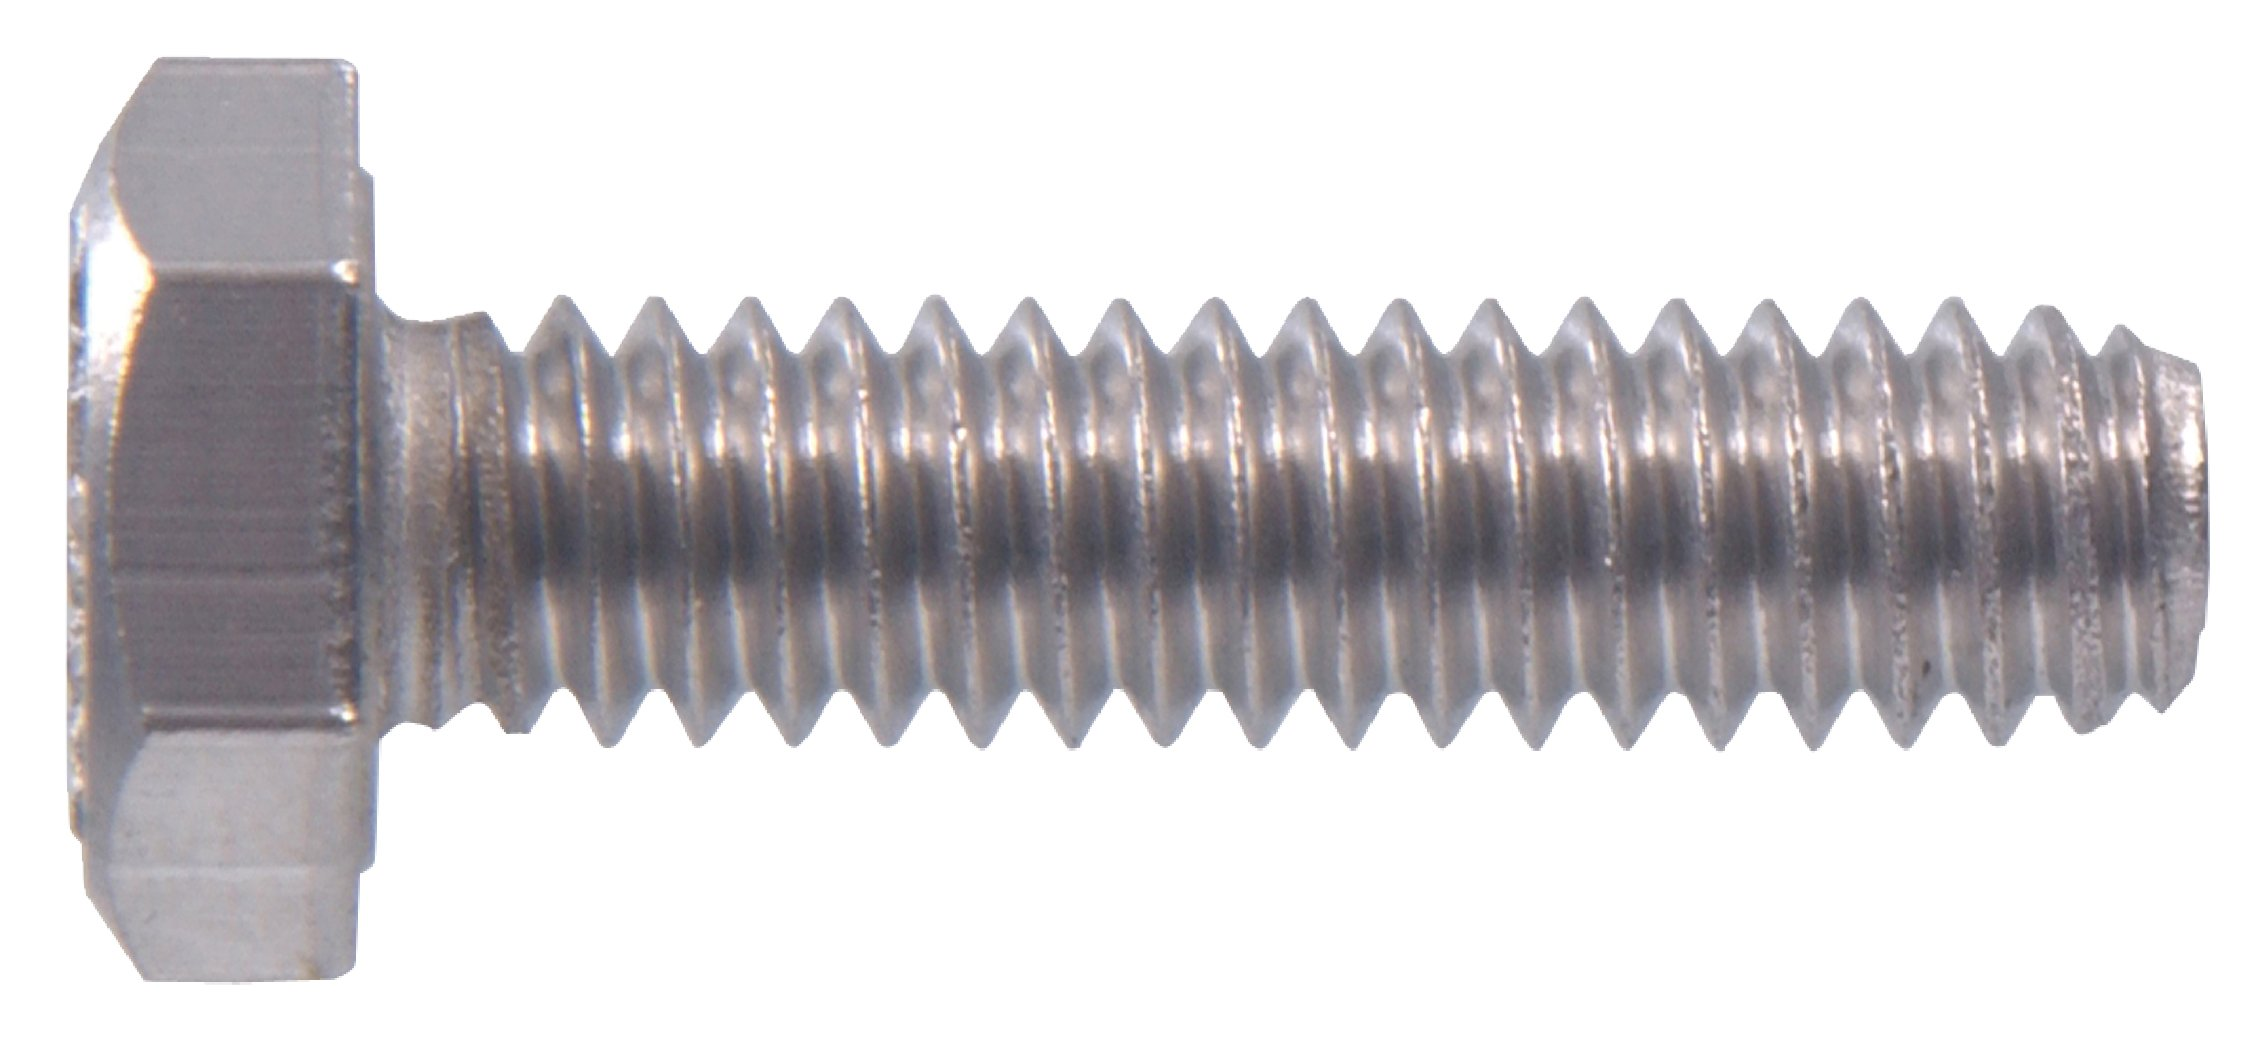 The Hillman Group 831487 1/4 X 1-Inch Stainless Steel Hurricane Track Bolt, 100-Pack